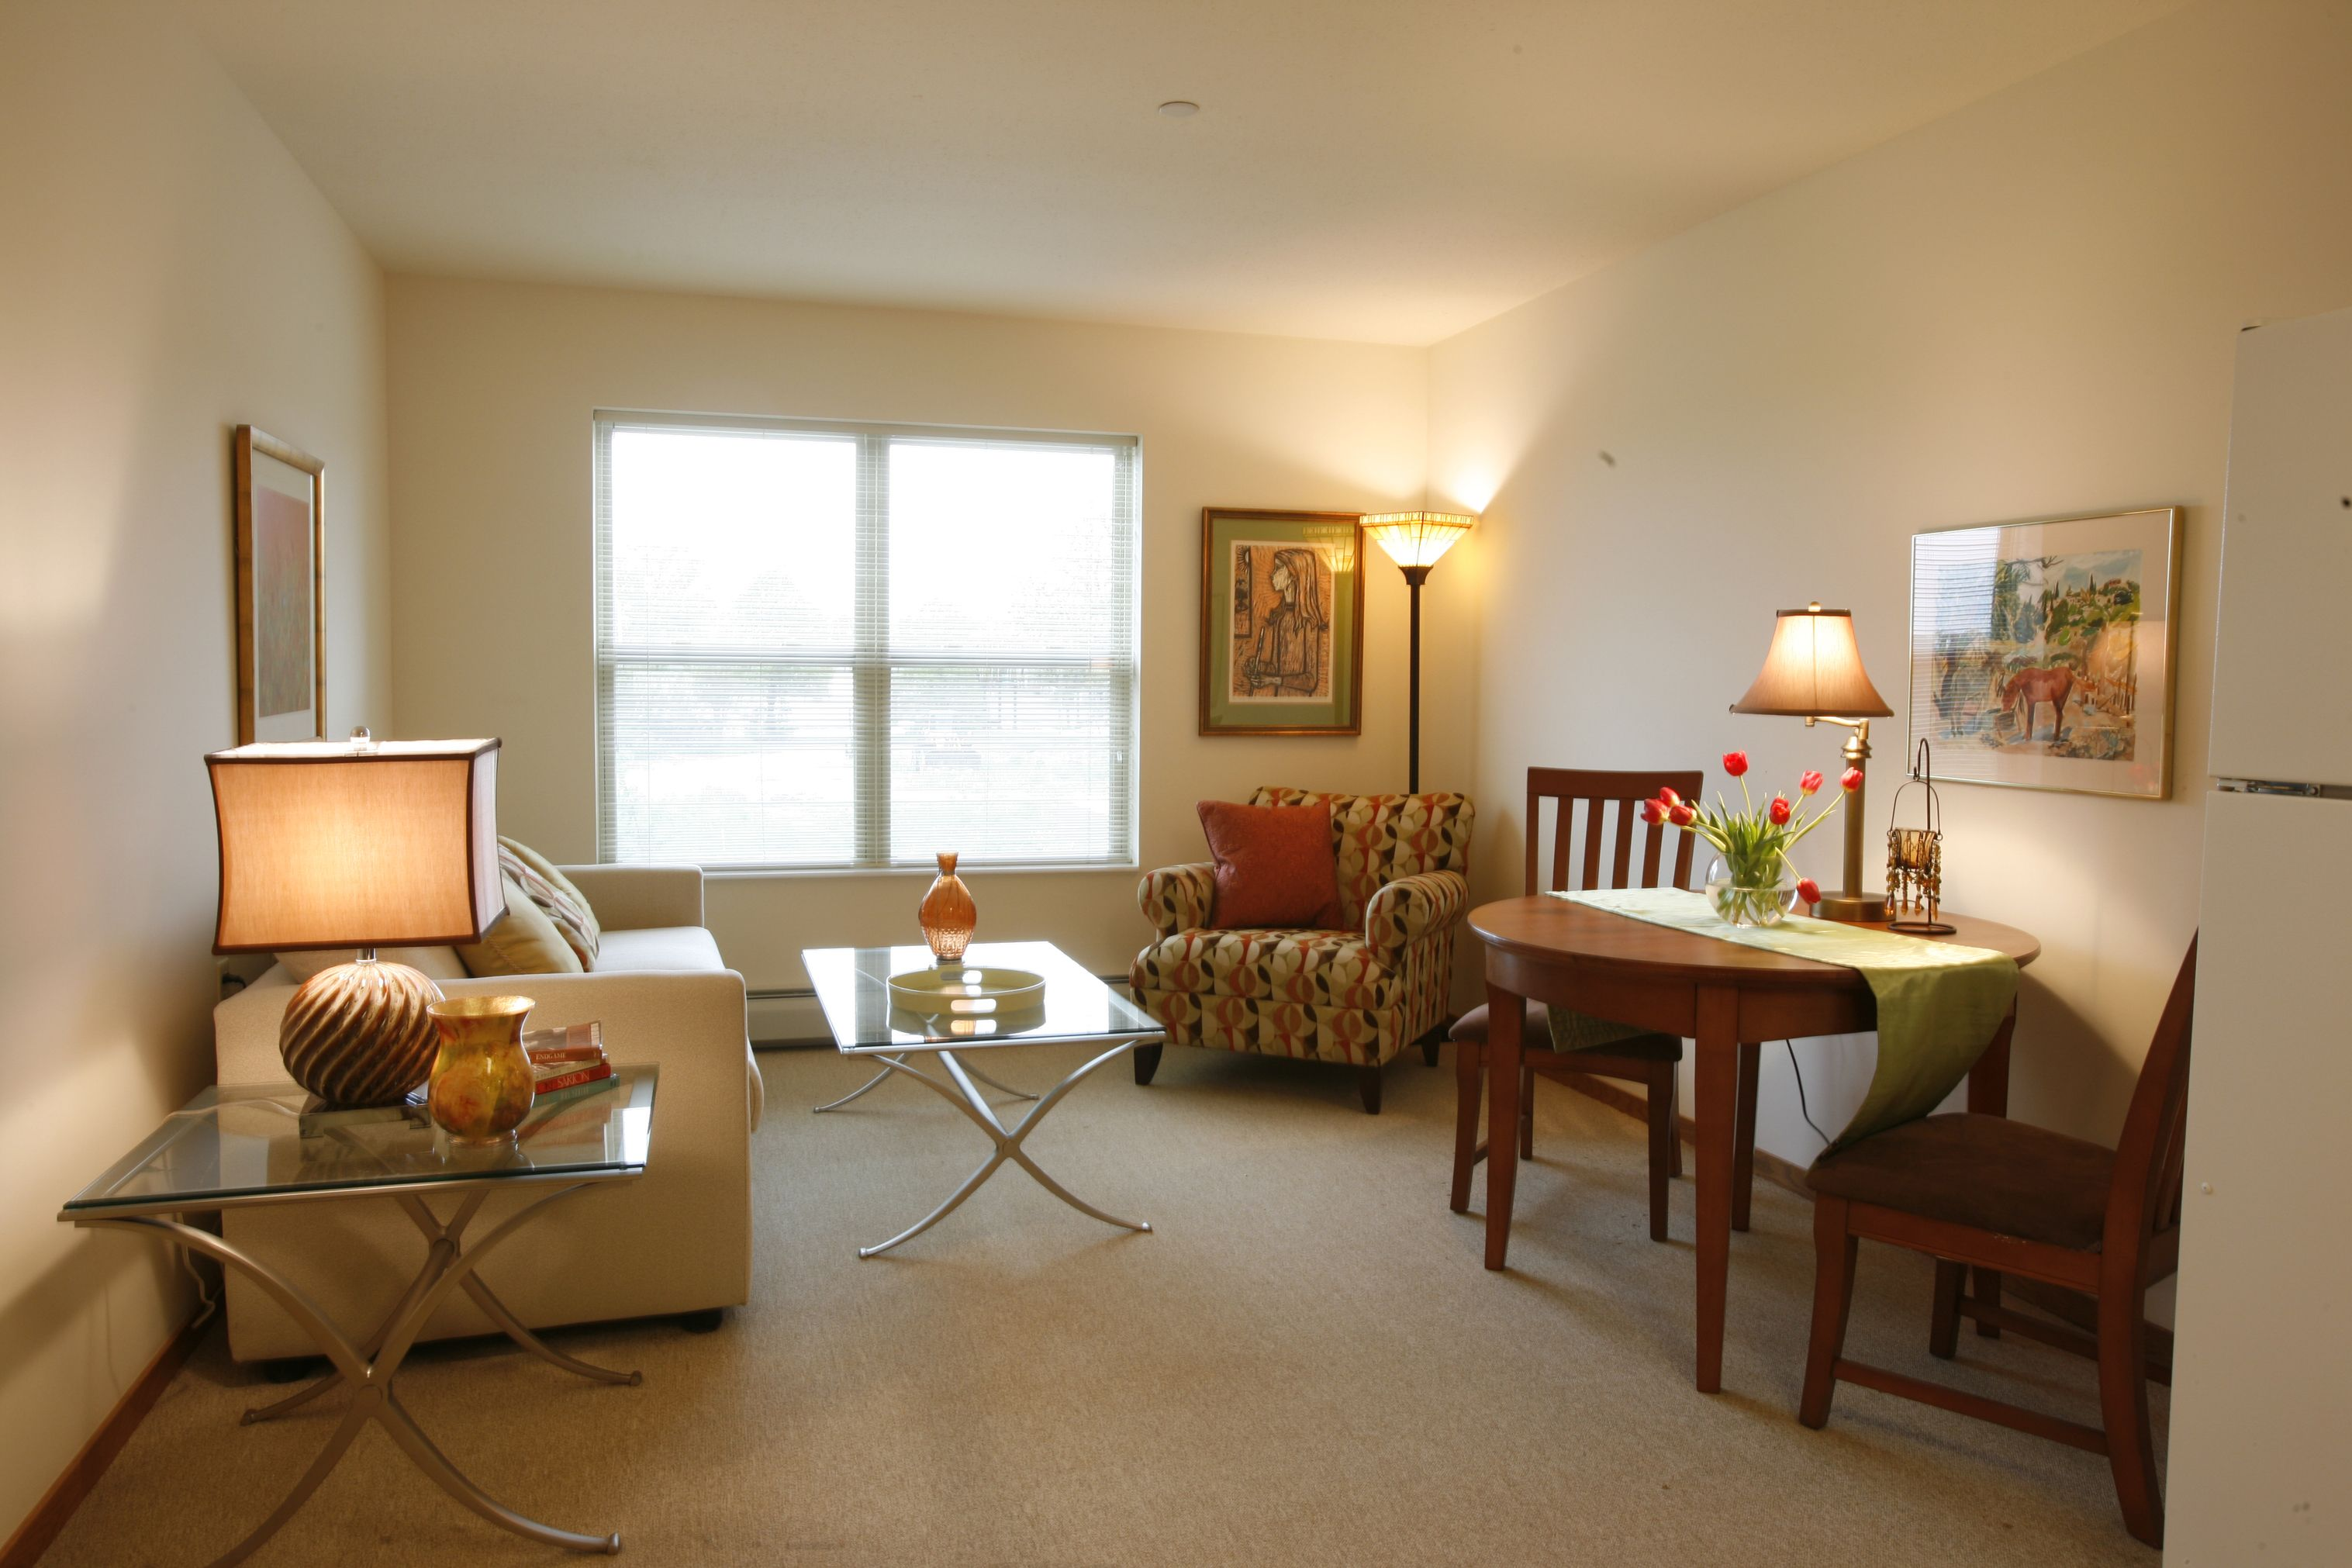 Assisted Living Apartment Models - Google Search